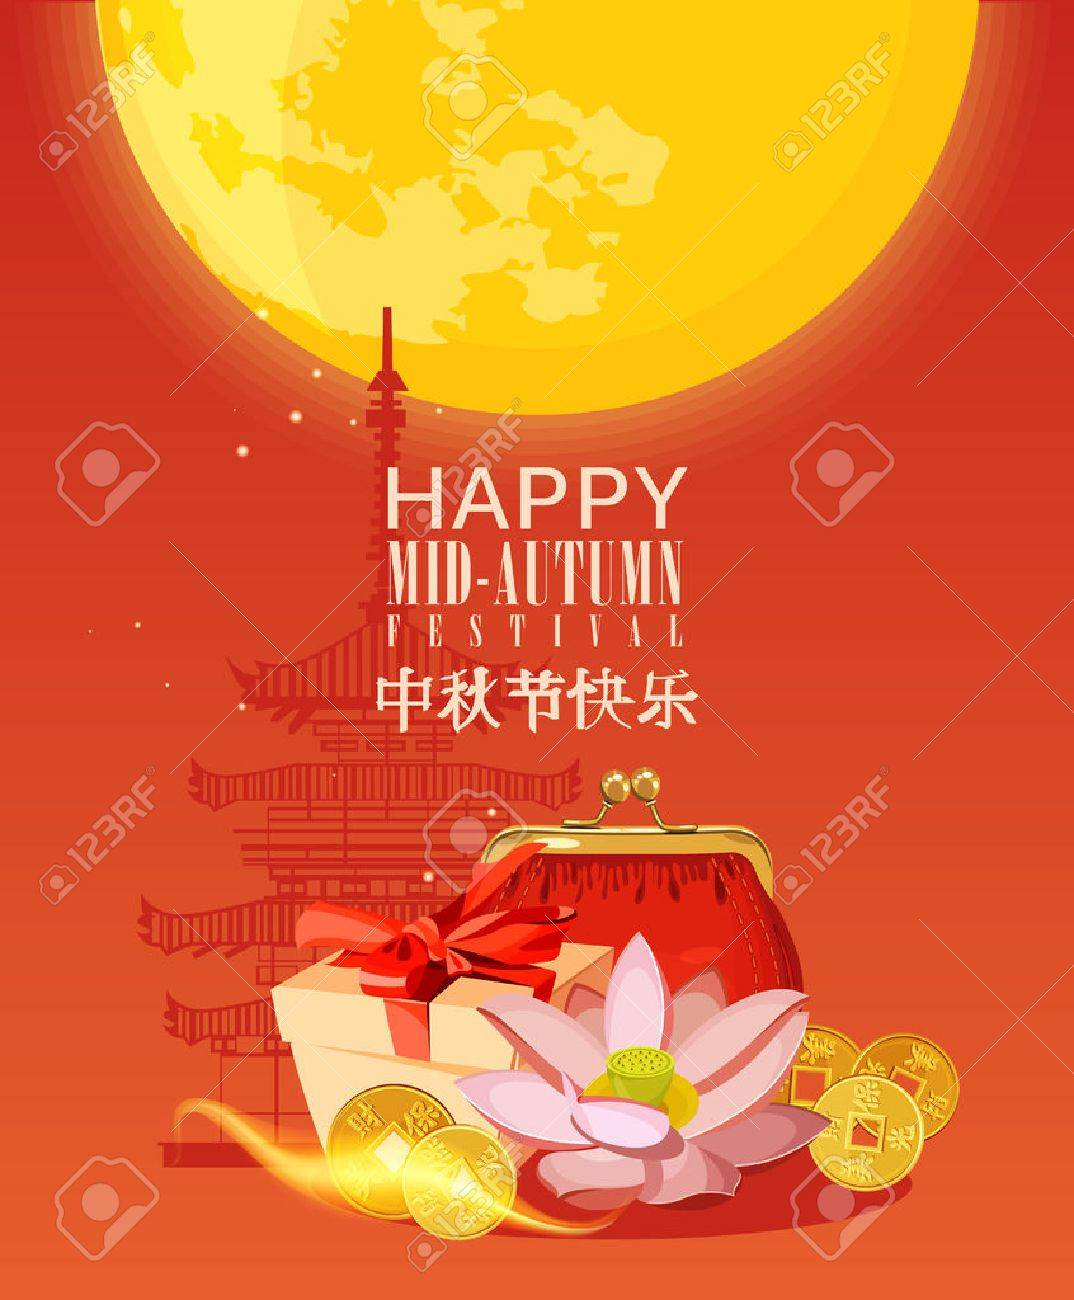 Mid Autumn Lantern Festival Vector Background Royalty Free Cliparts